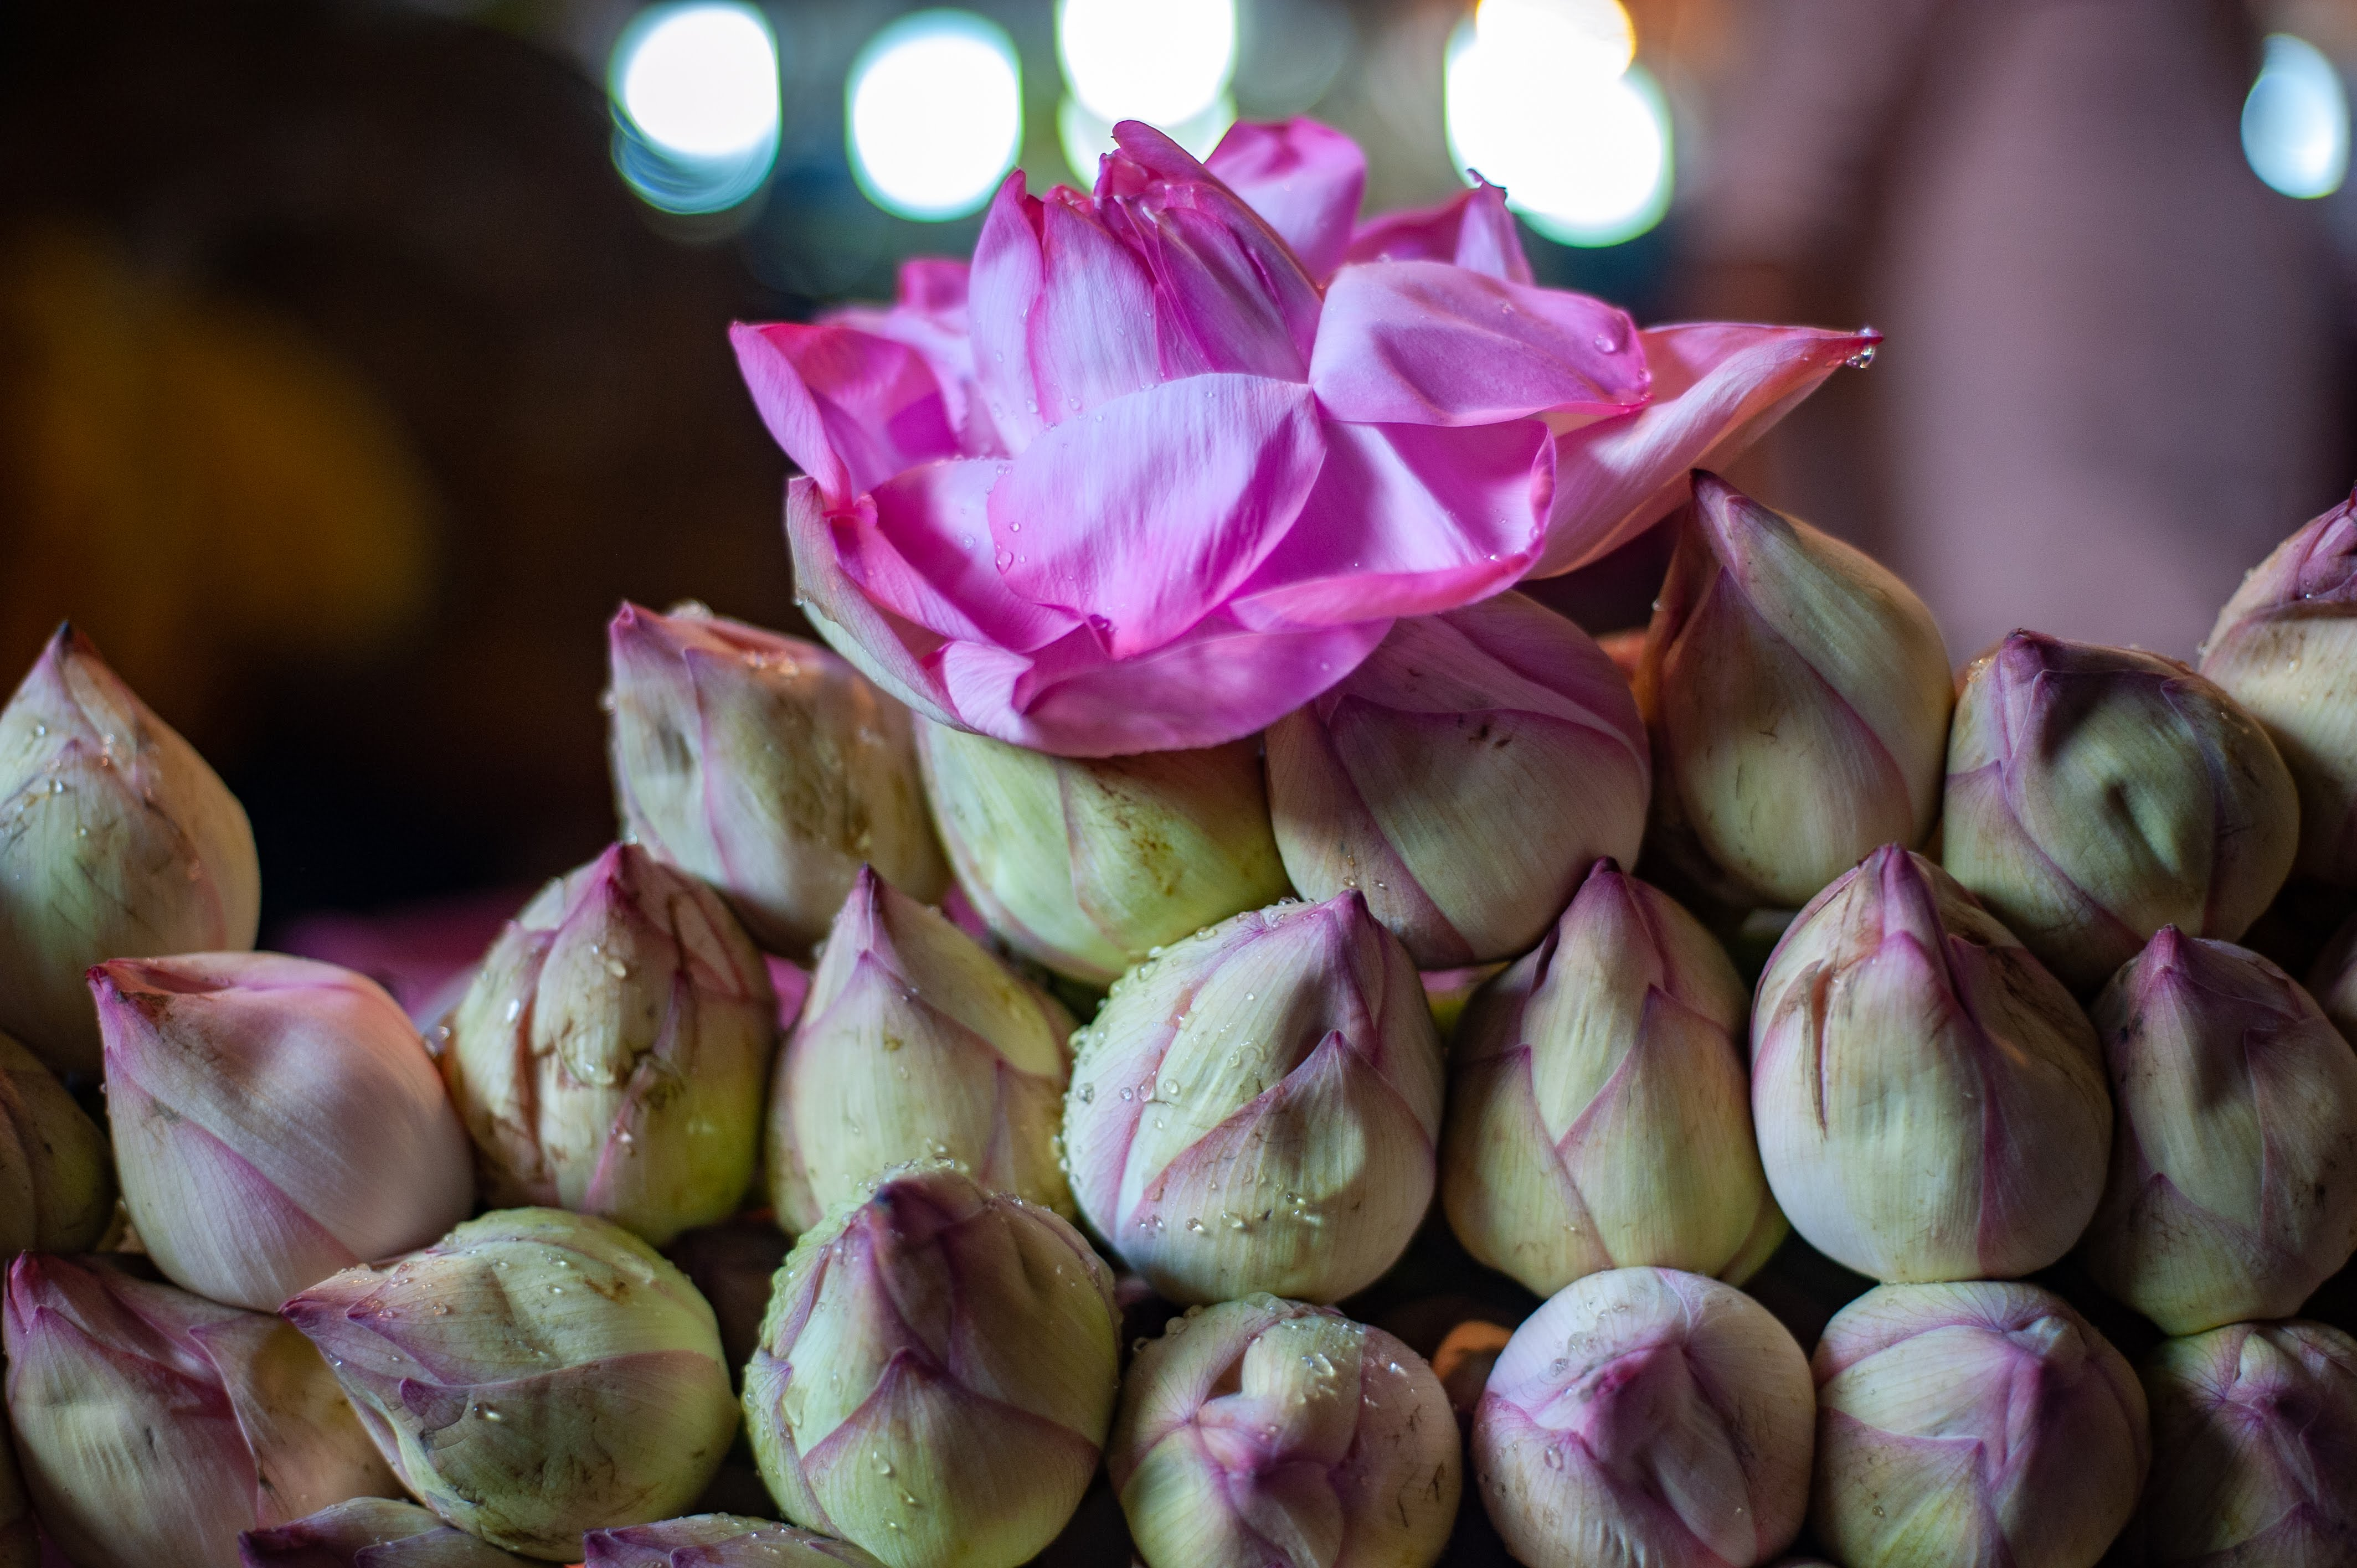 A front, close-up shot of a lotus bloom delicately placed over s stack of lotus buds.